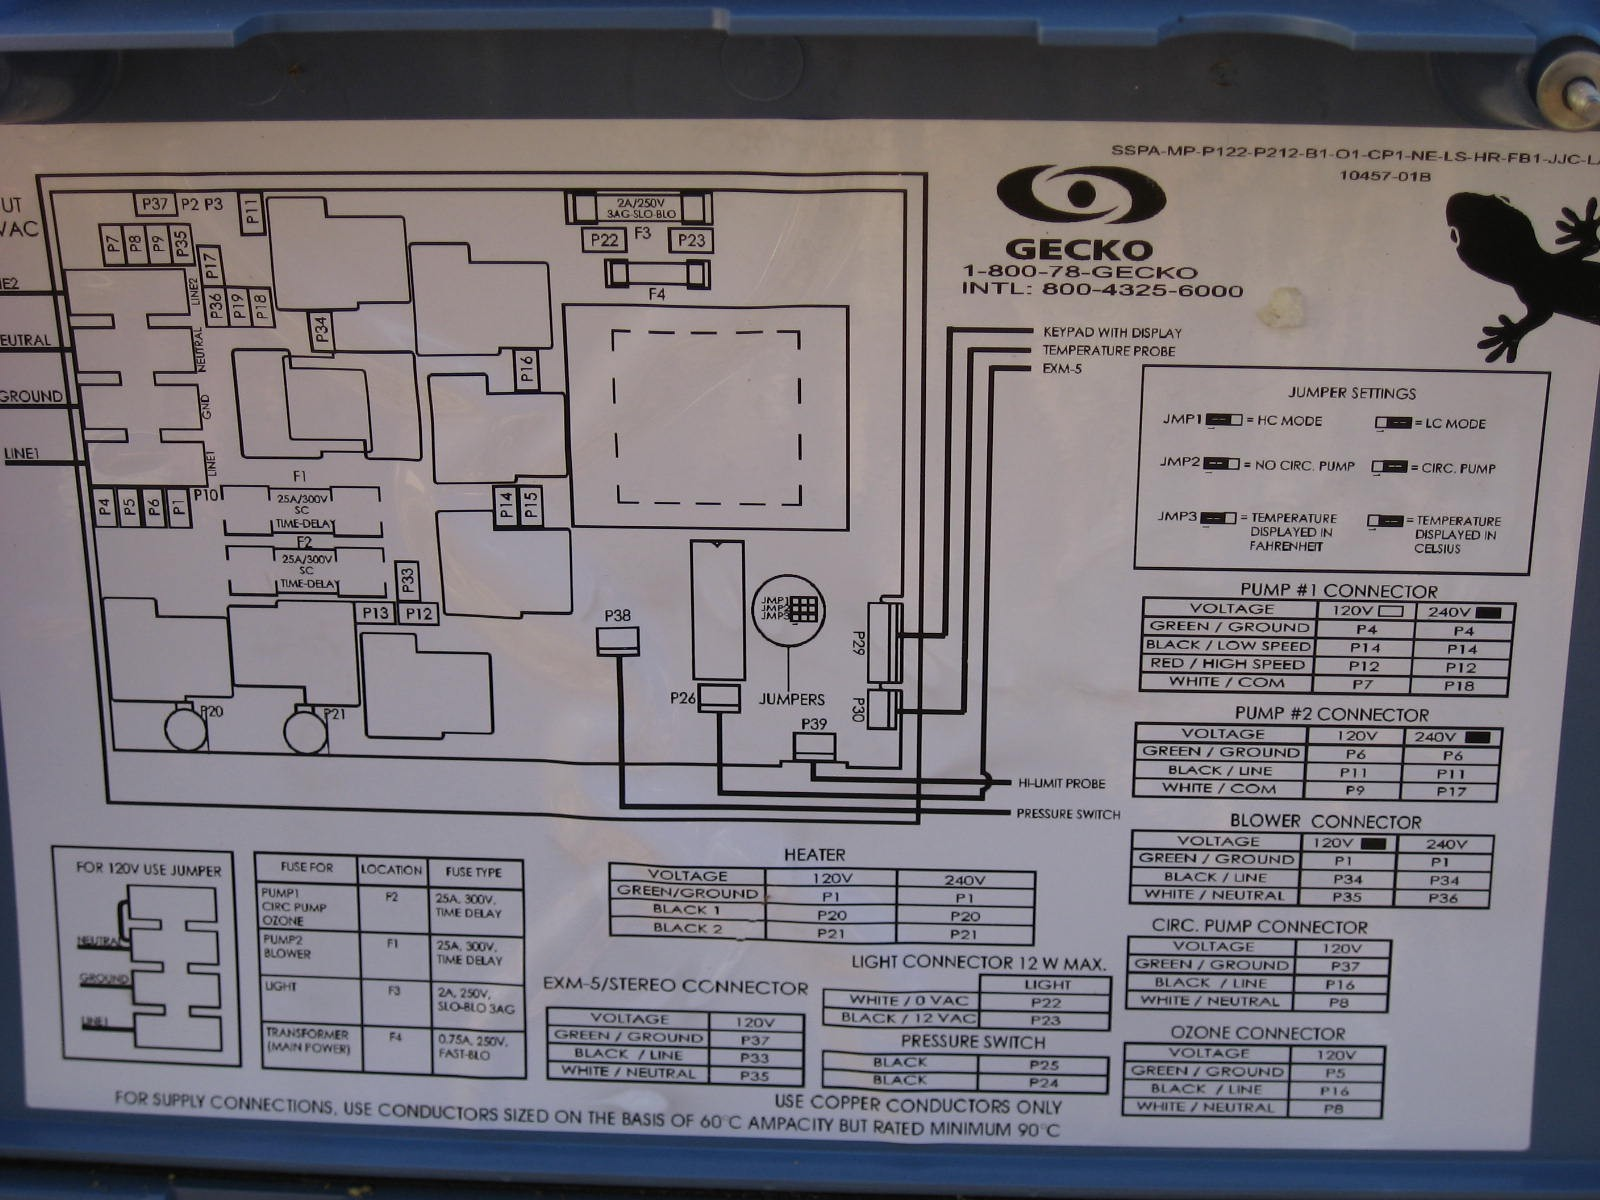 Beautiful ruud water heater wiring diagram pictures everything you enchanting ruud water heater wiring diagram illustration ccuart Image collections